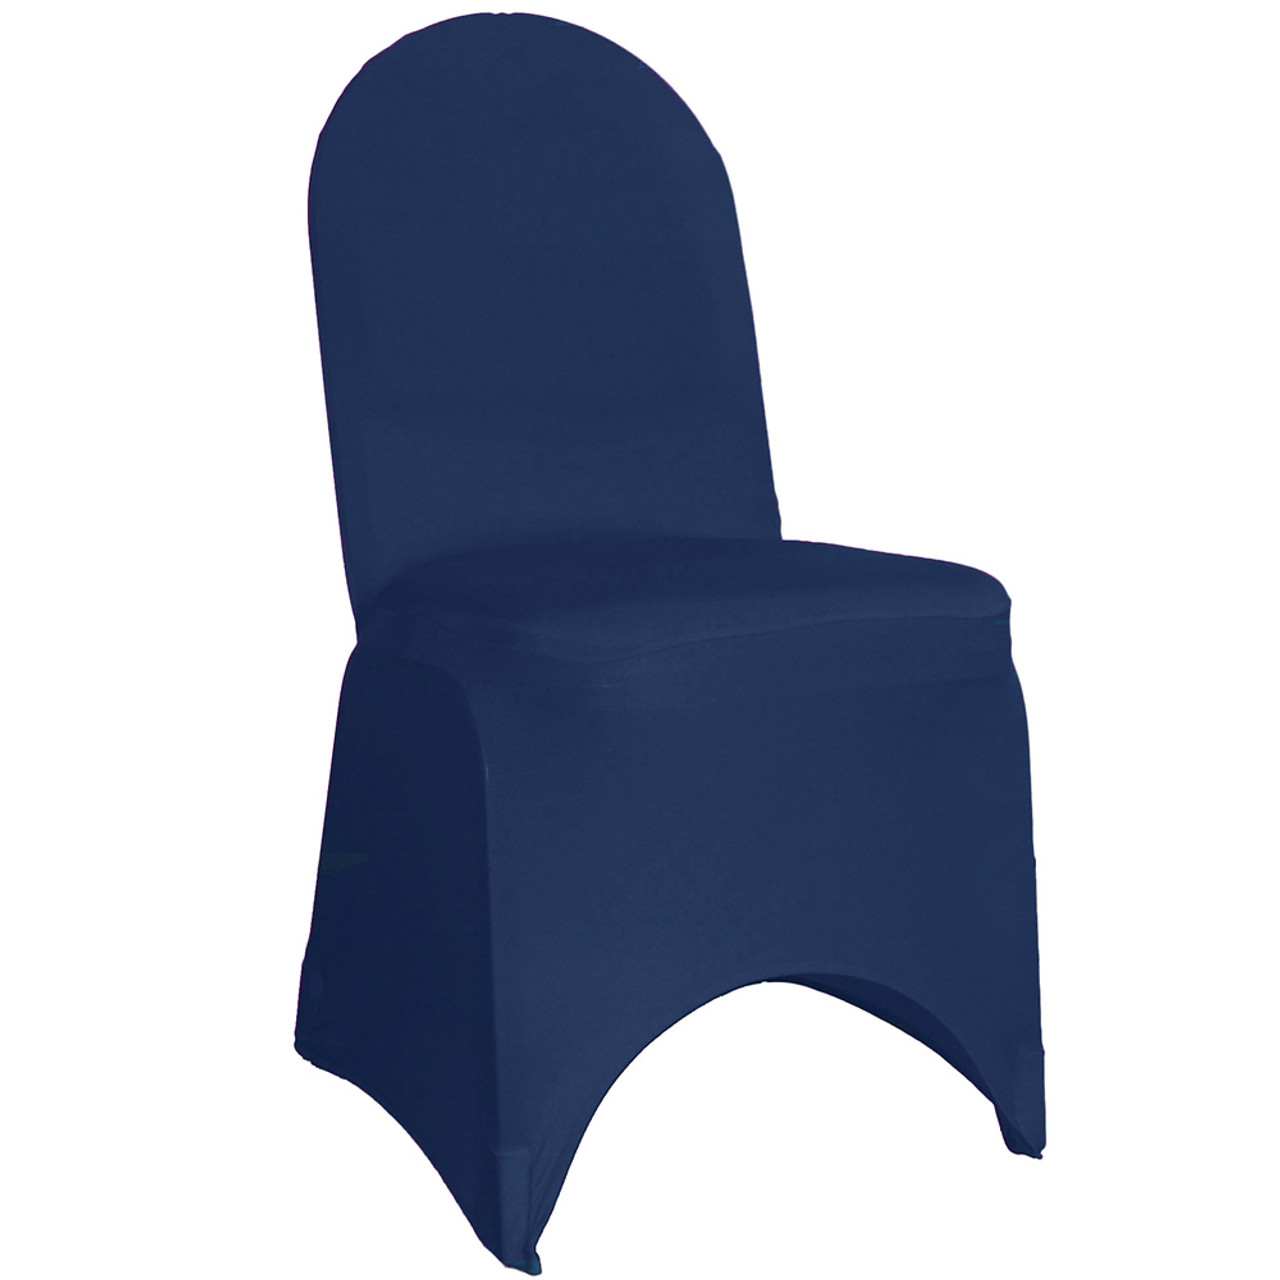 Stretch Spandex Banquet Chair Cover Navy Blue Your Chair